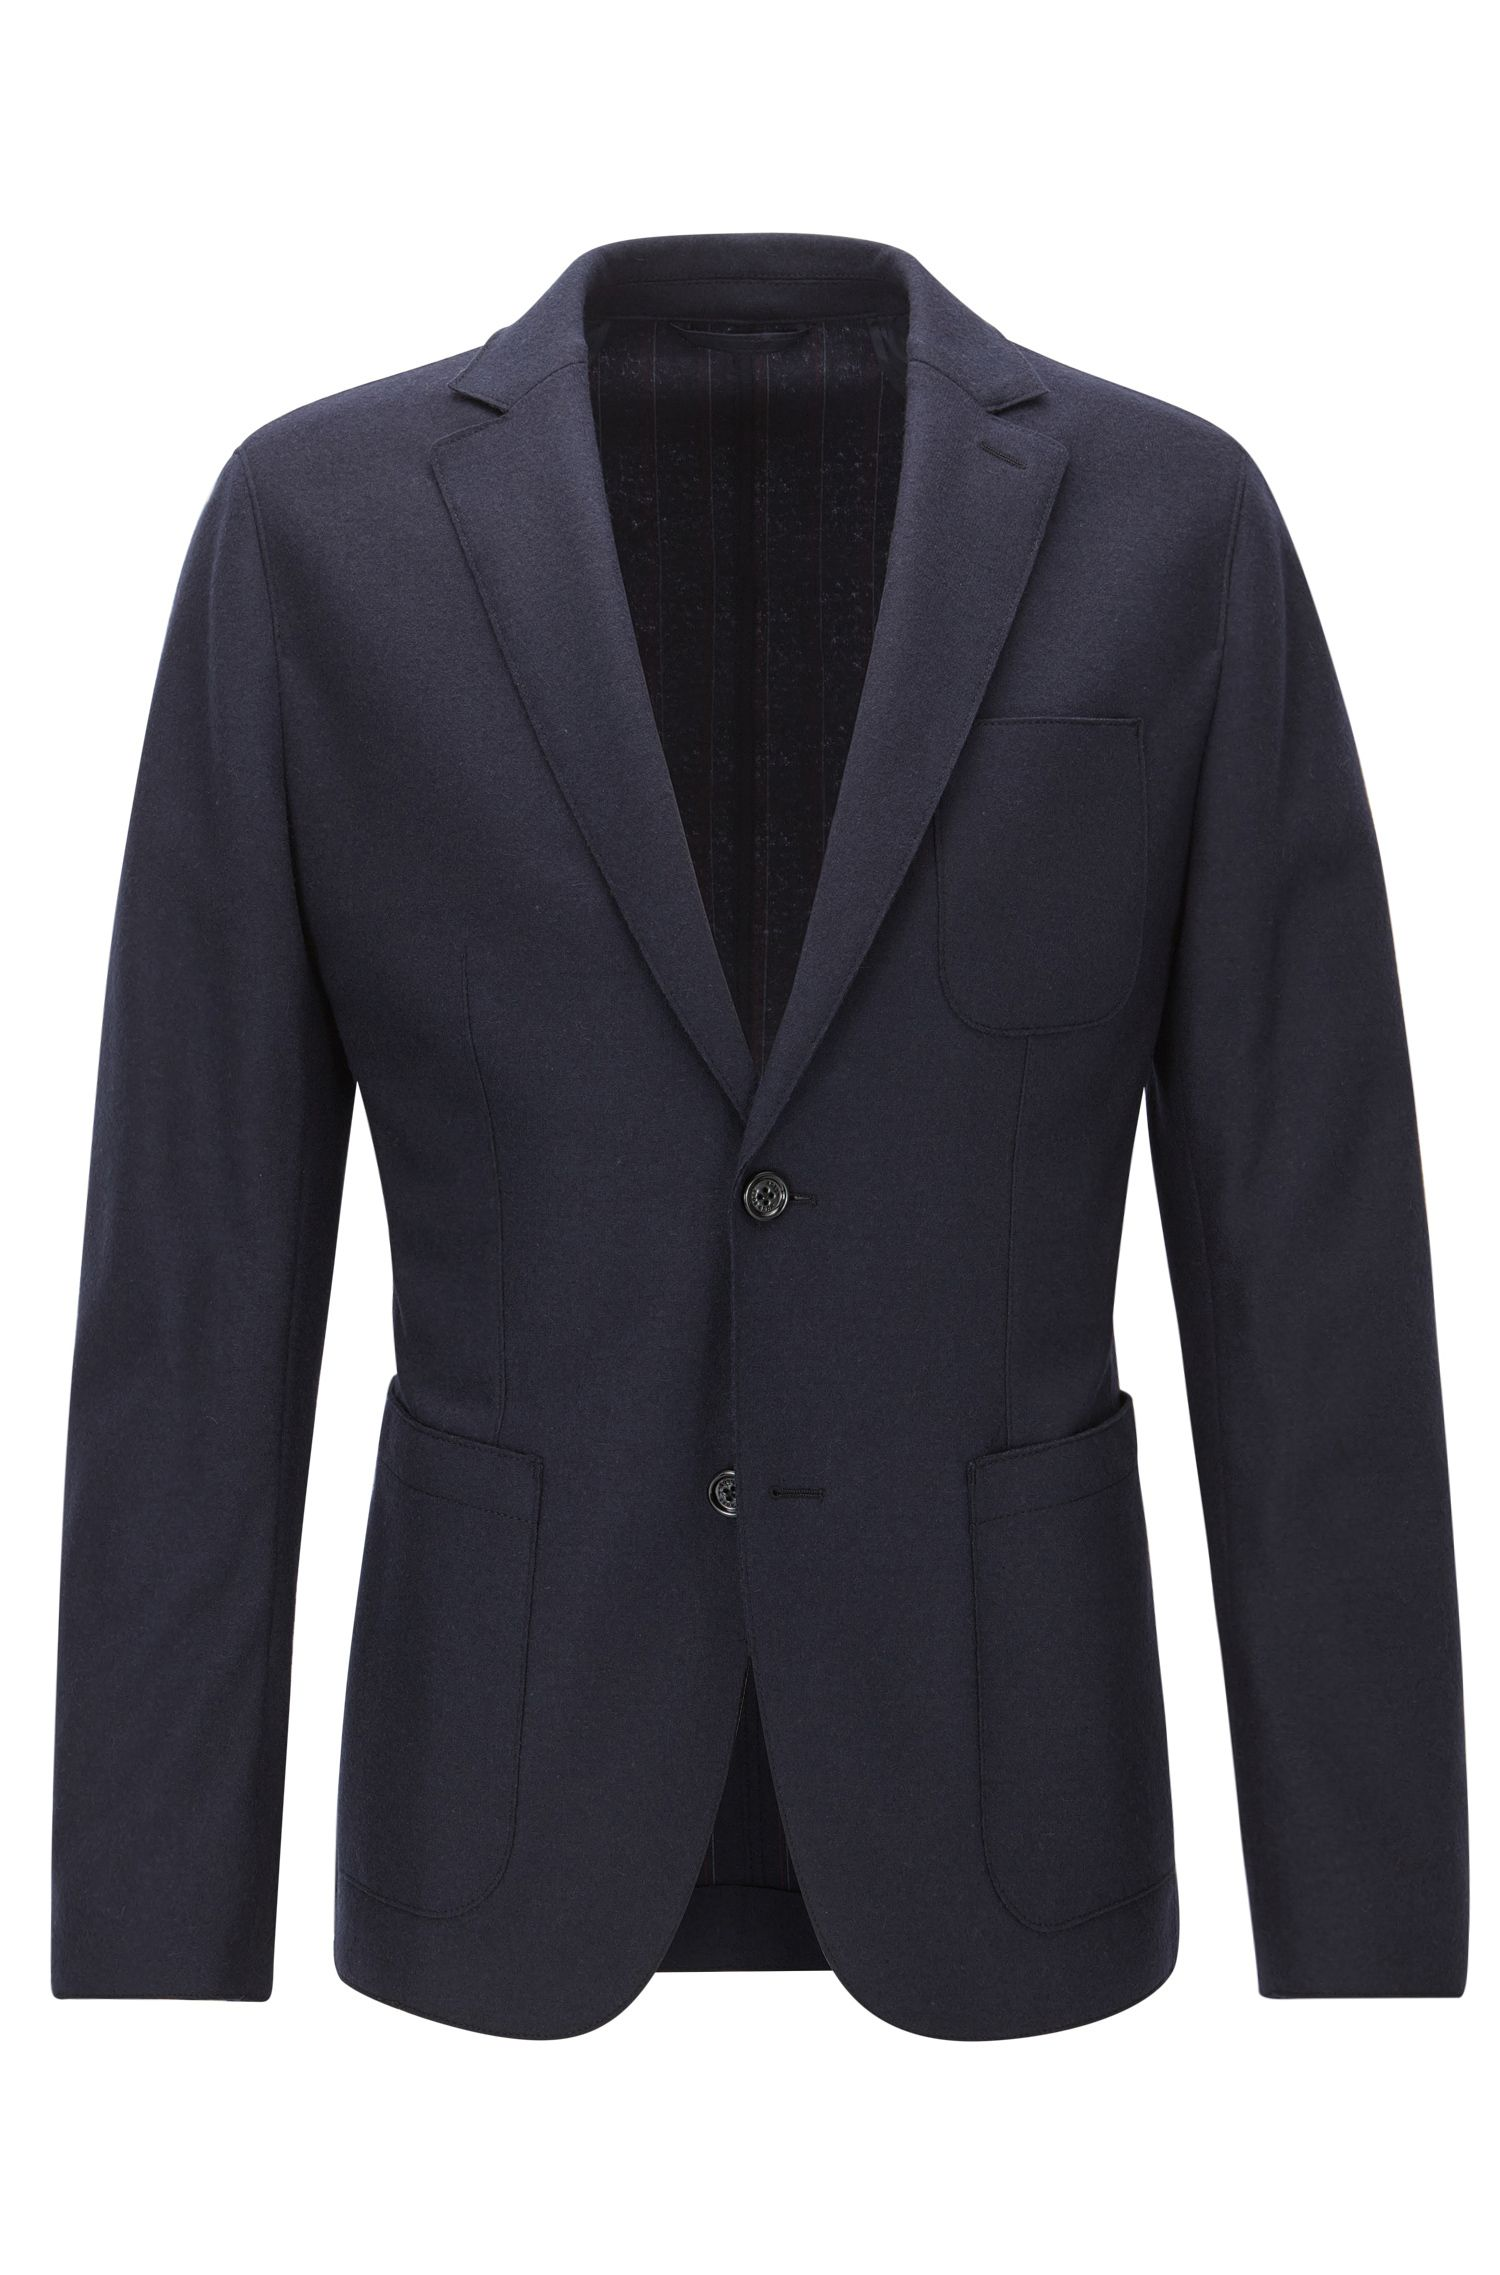 Slim-fit virgin wool jersey jacket with raw-cut edges